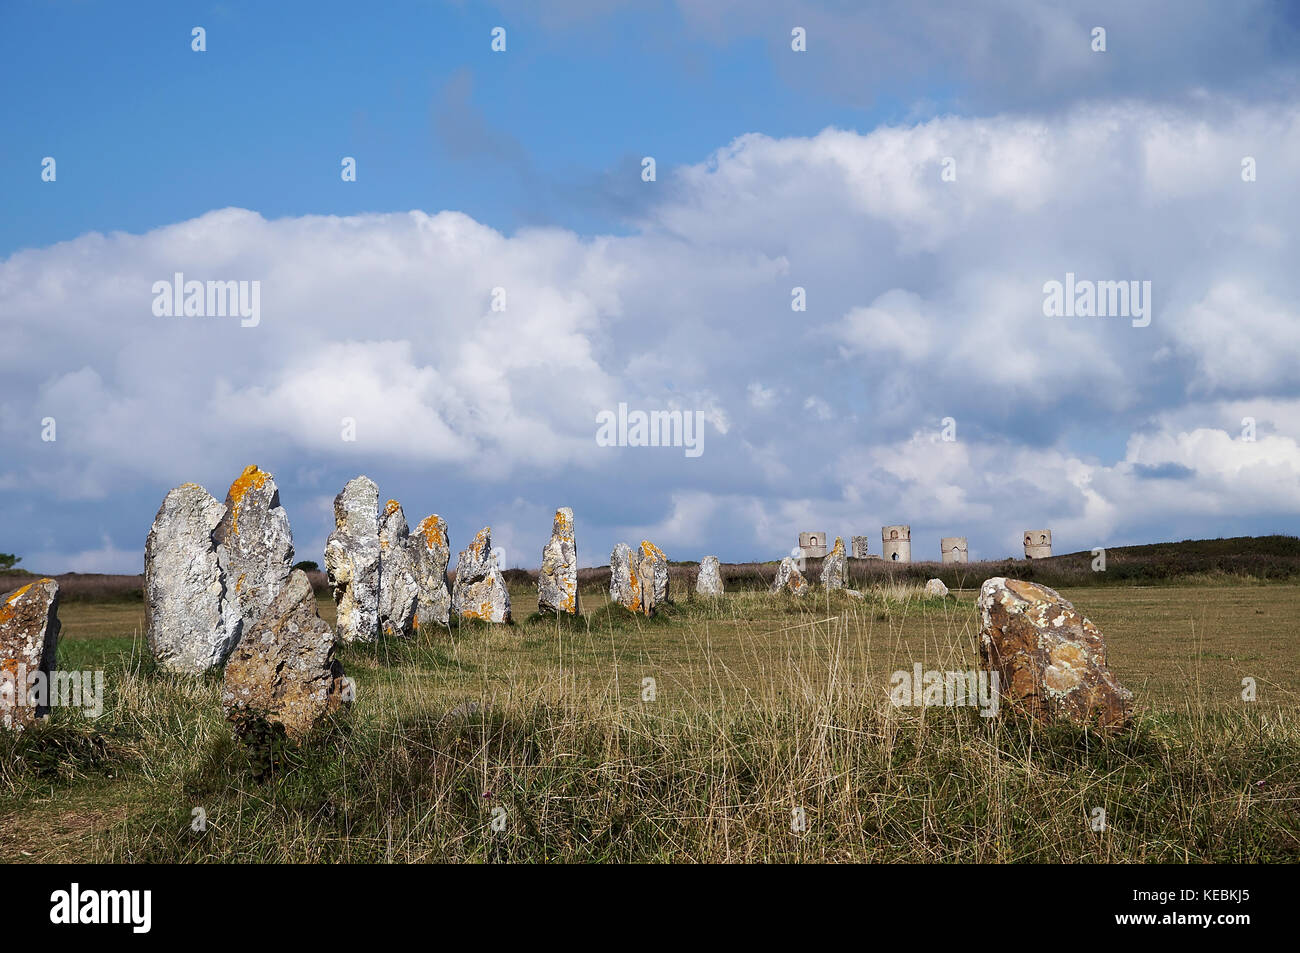 Alignment of Lagatjar megaliths in field with stone tower in background, in Camaret-sur-mer (France-Brittany). - Stock Image